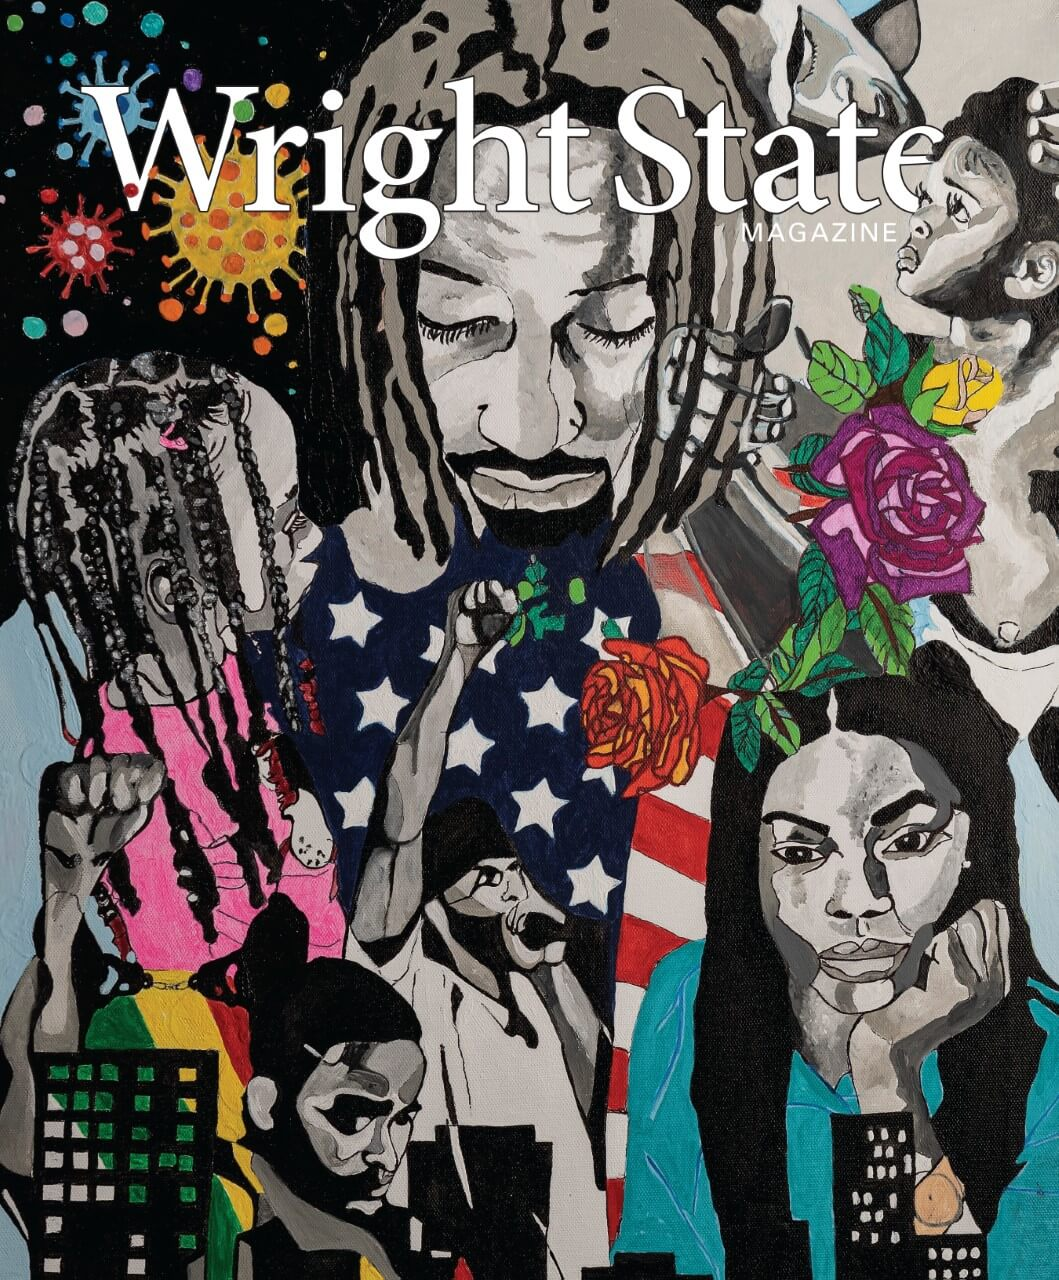 Cover of spring 2021 wright state magazine